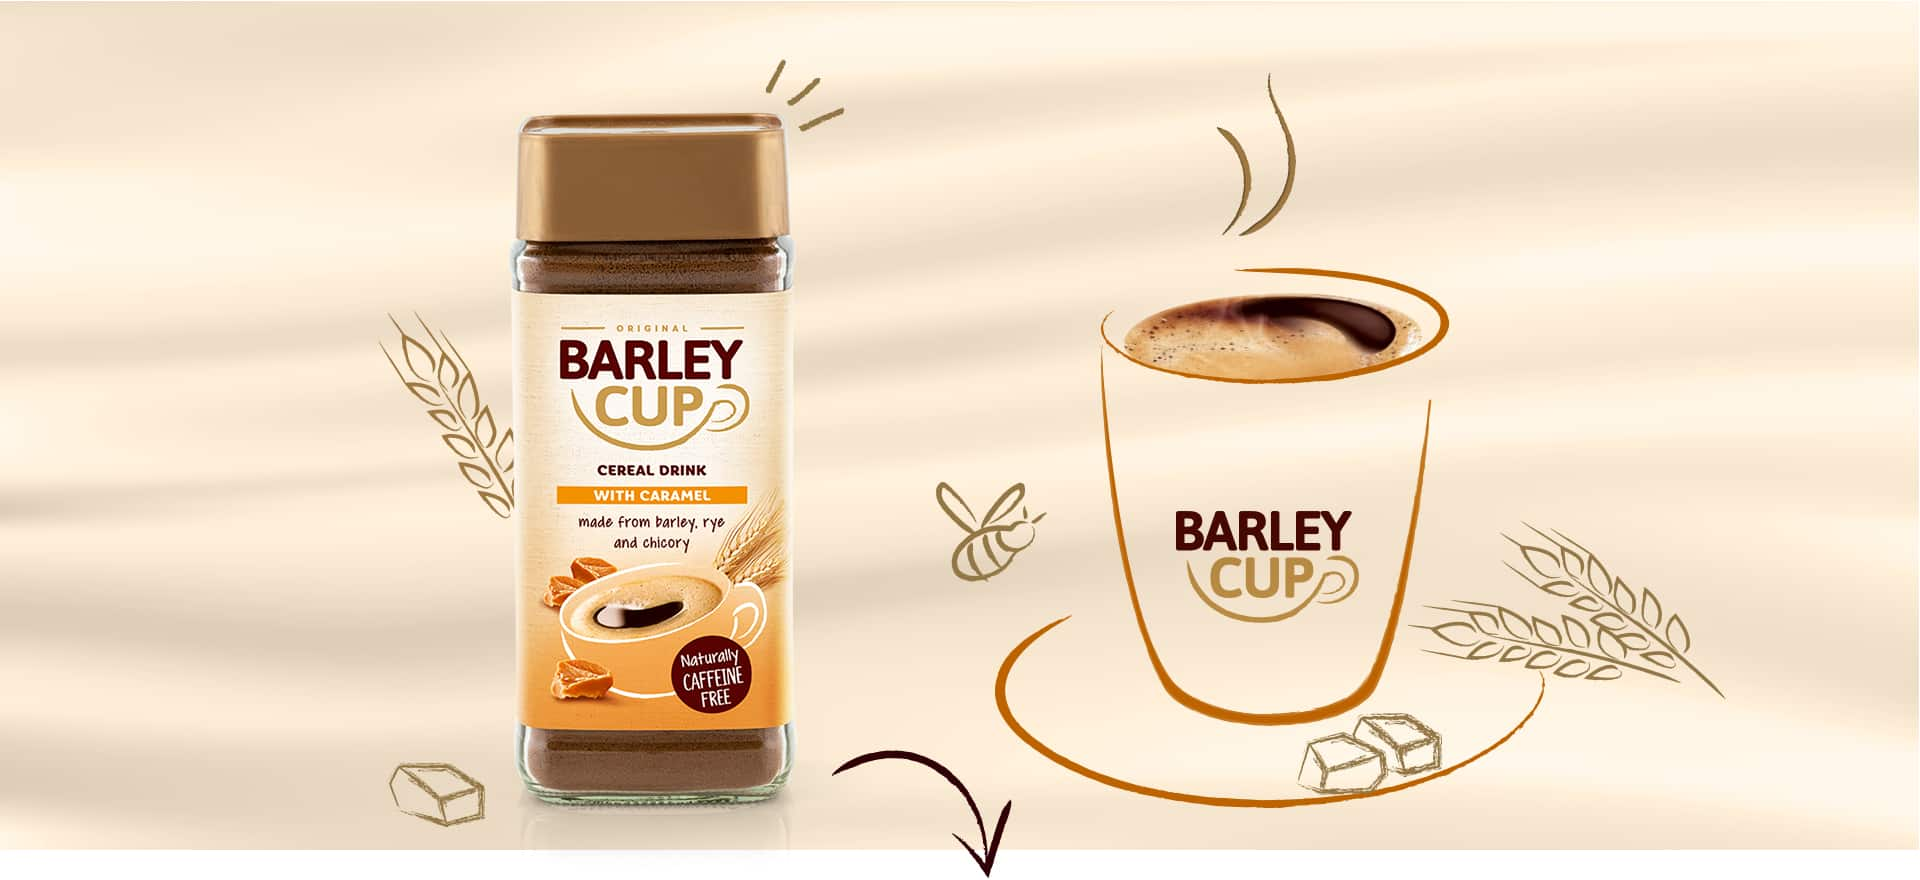 Barleycup with Caramel